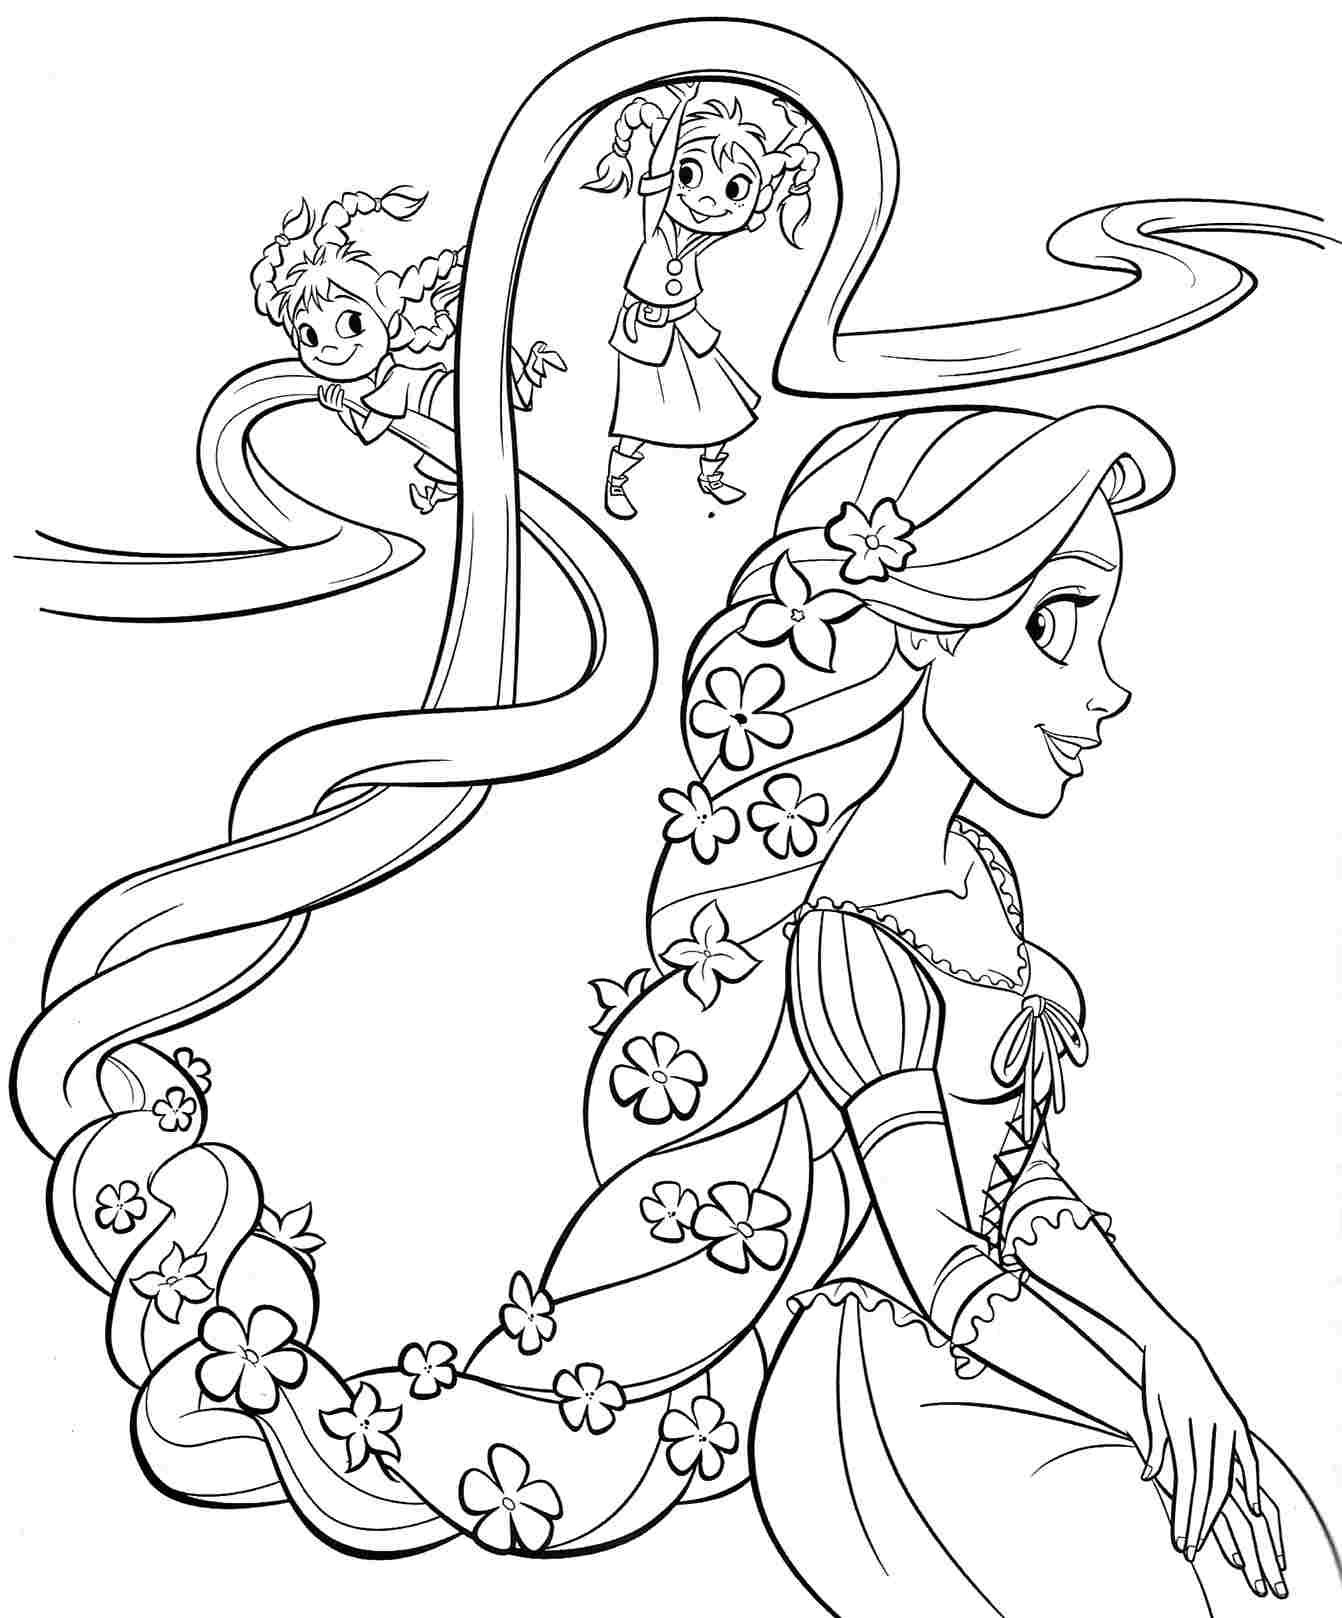 Disney coloring pages and games - Disney Coloring Pages And Games 43